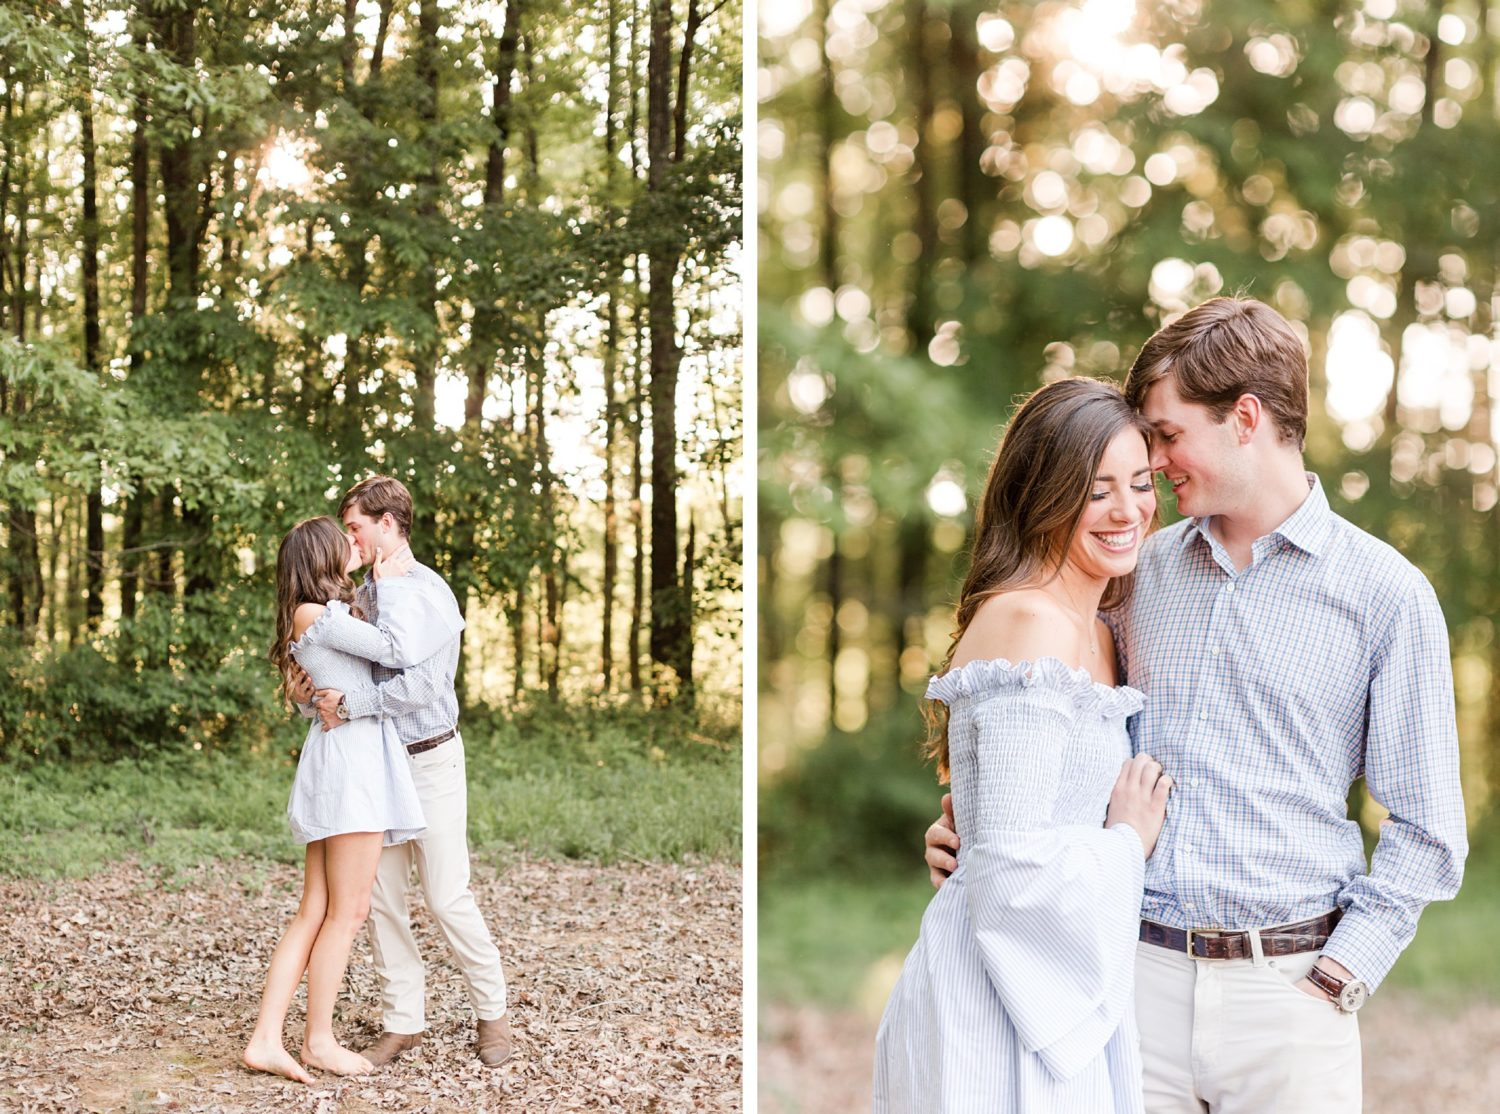 http://amy-hutchinson.com/wp-content/uploads/2018/05/ahp-summer-tennessee-farm-engagement_0003.jpg